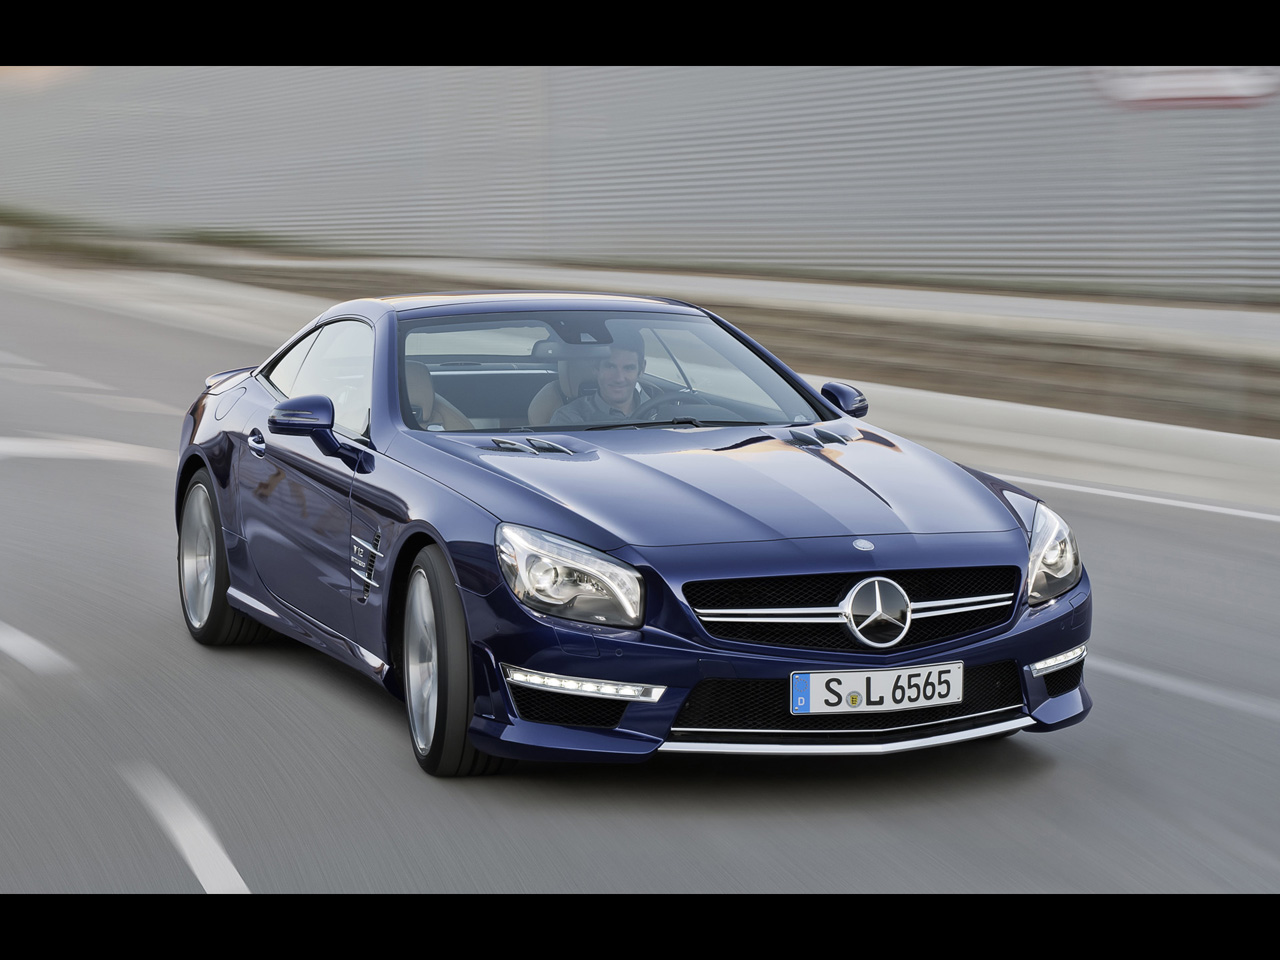 2013 mercedes benz sl 65 amg hd car wallpapers cartestimony. Black Bedroom Furniture Sets. Home Design Ideas